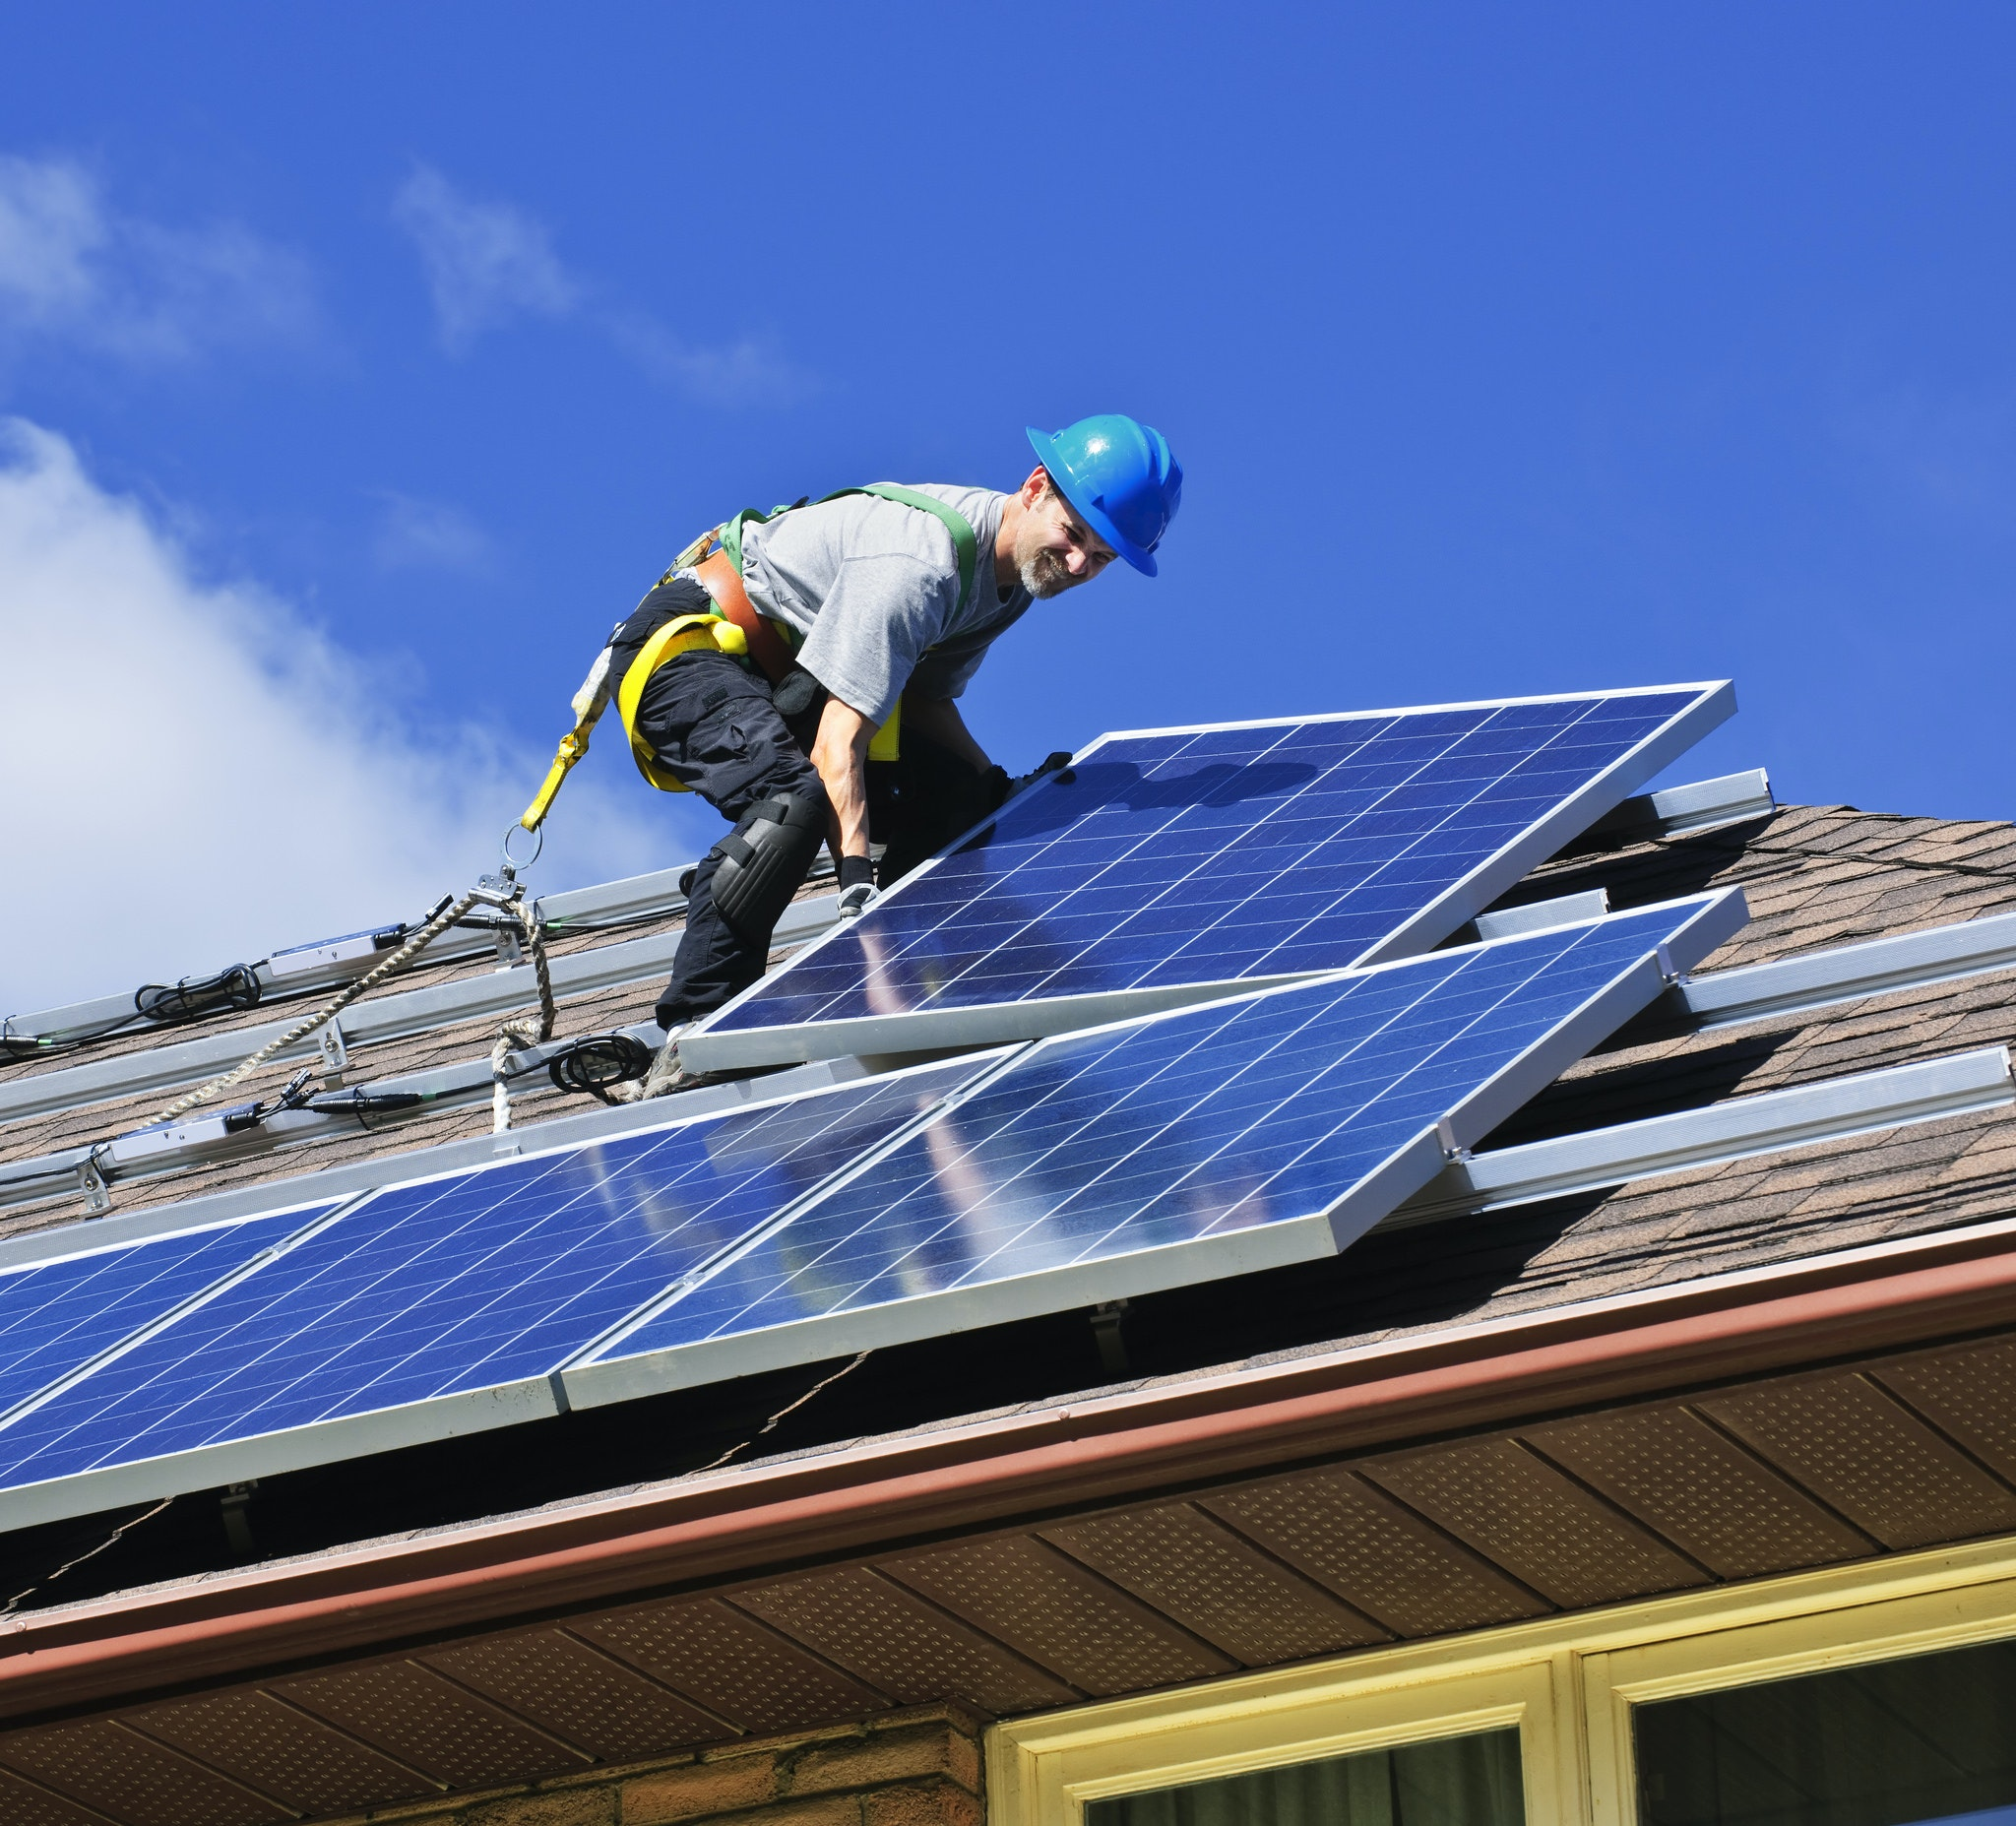 Solar panels are now required for new San Francisco buildings 70